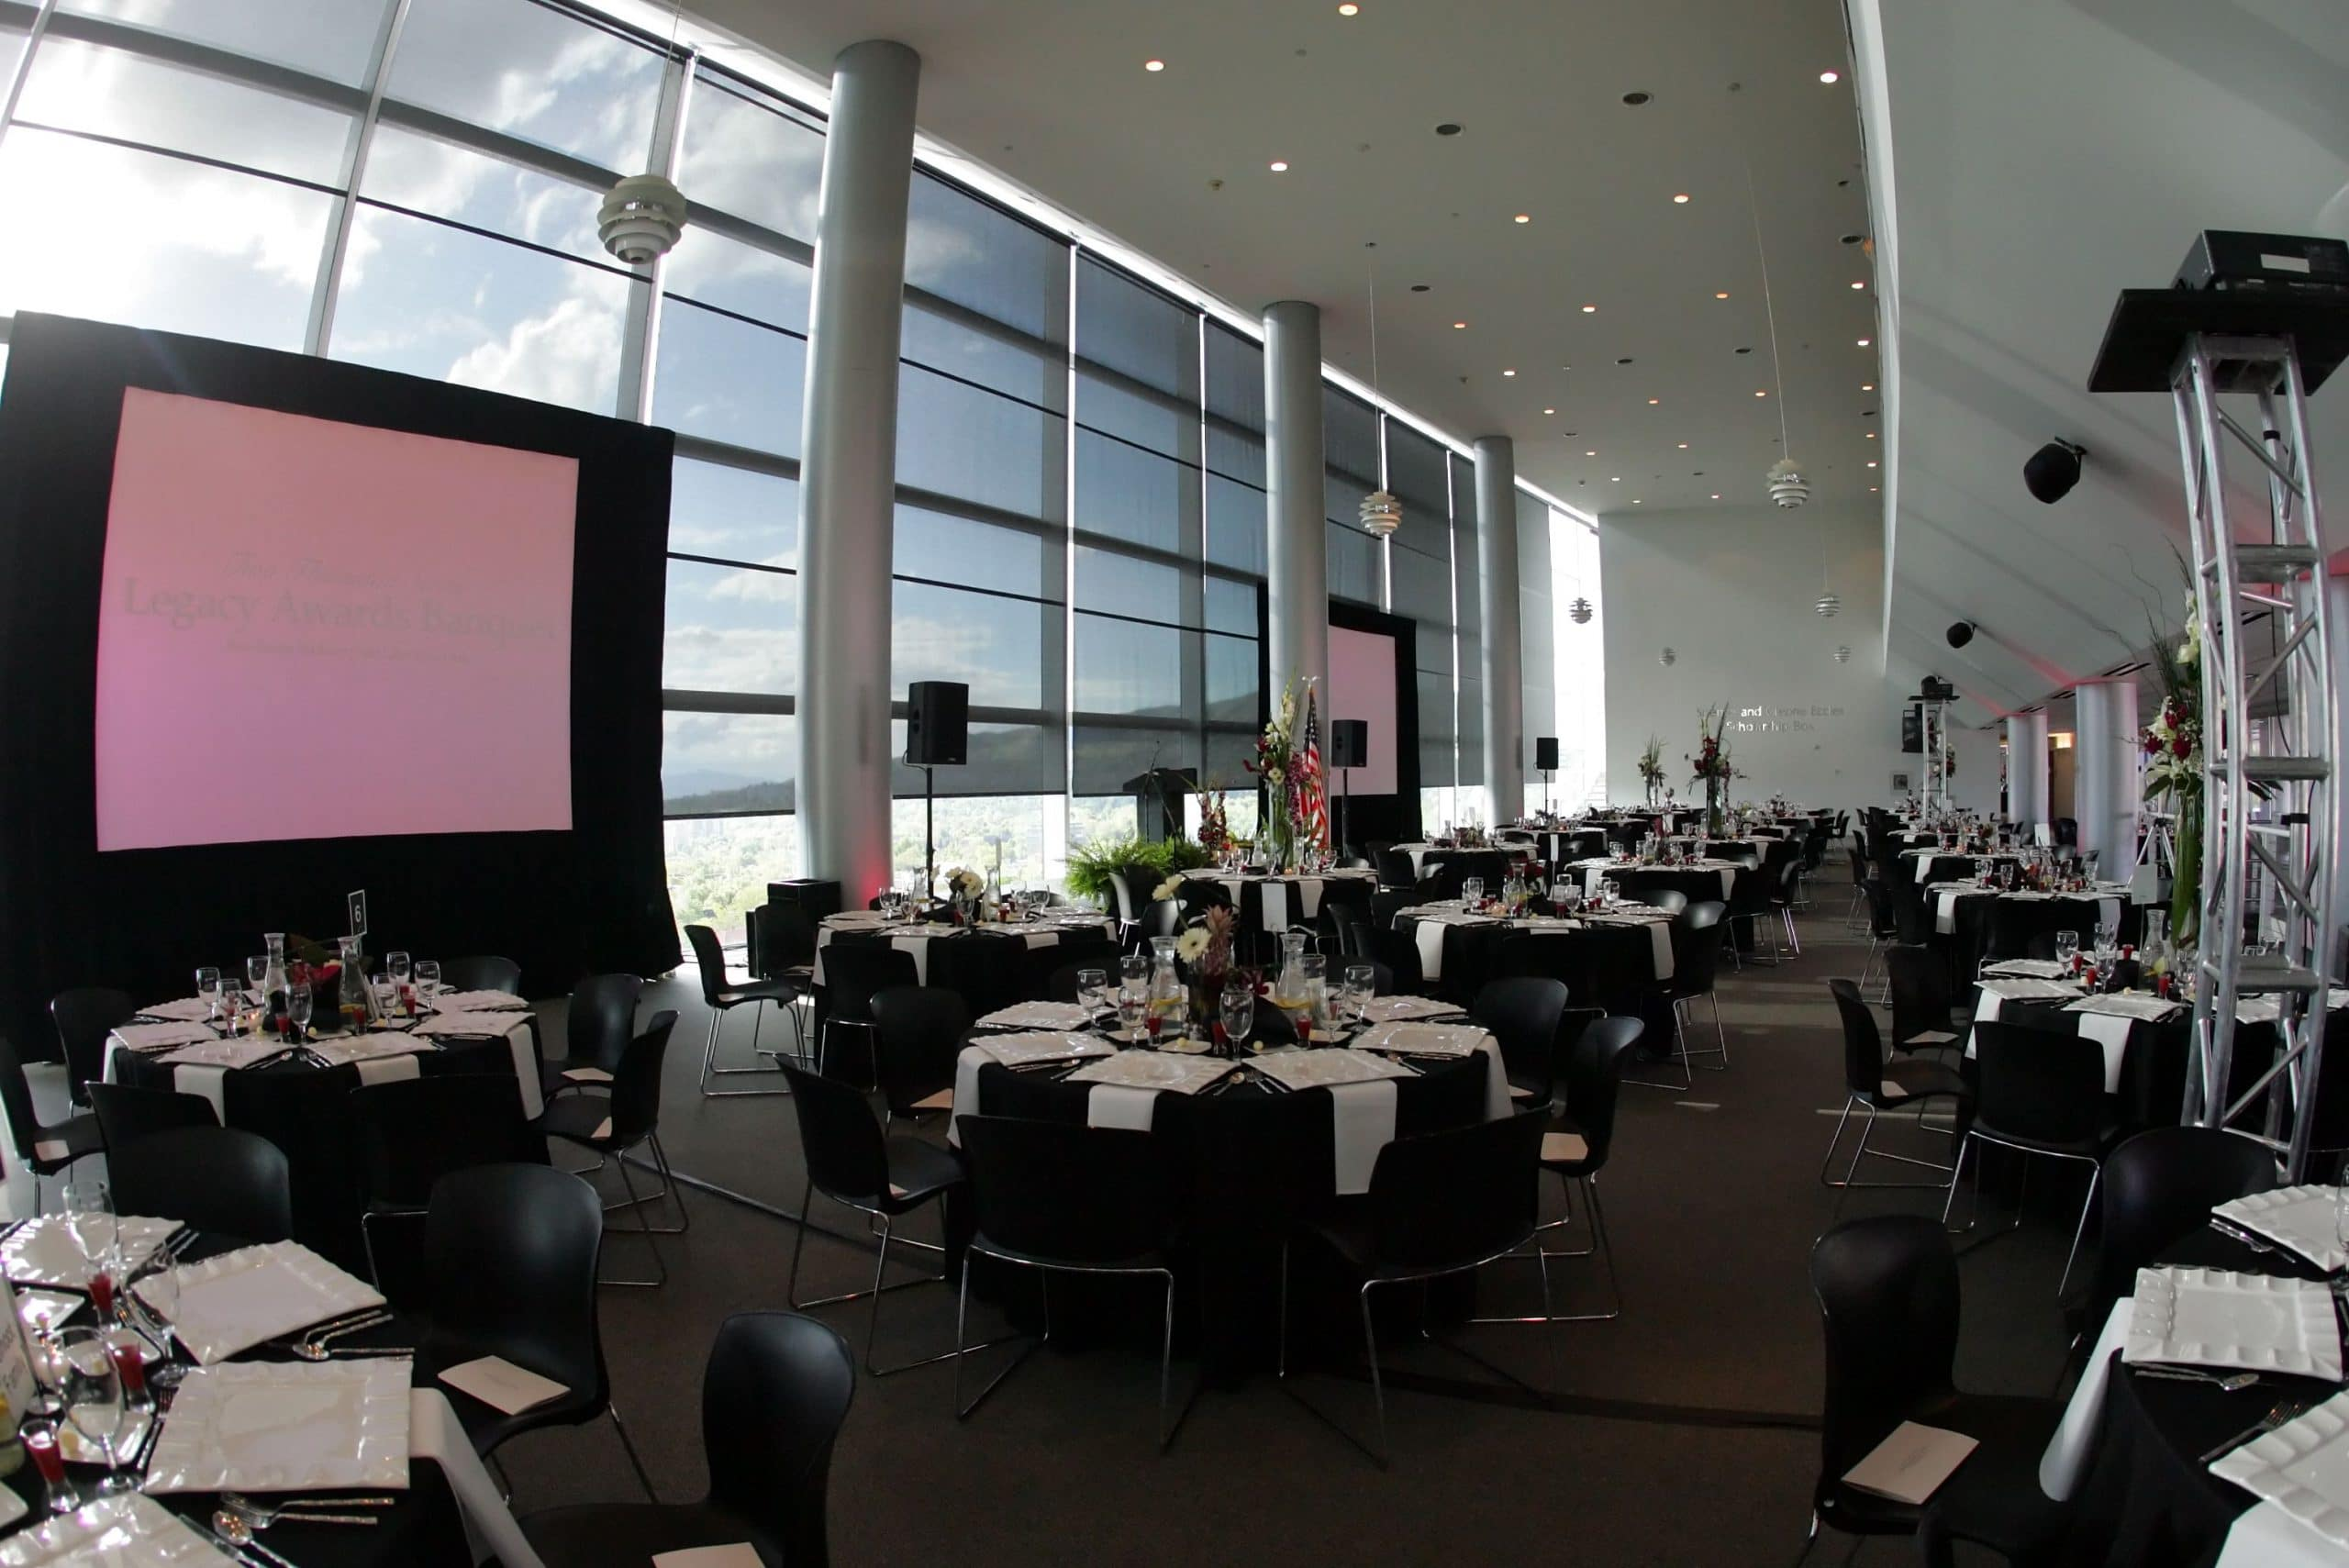 How to Start an Event Planning Business?